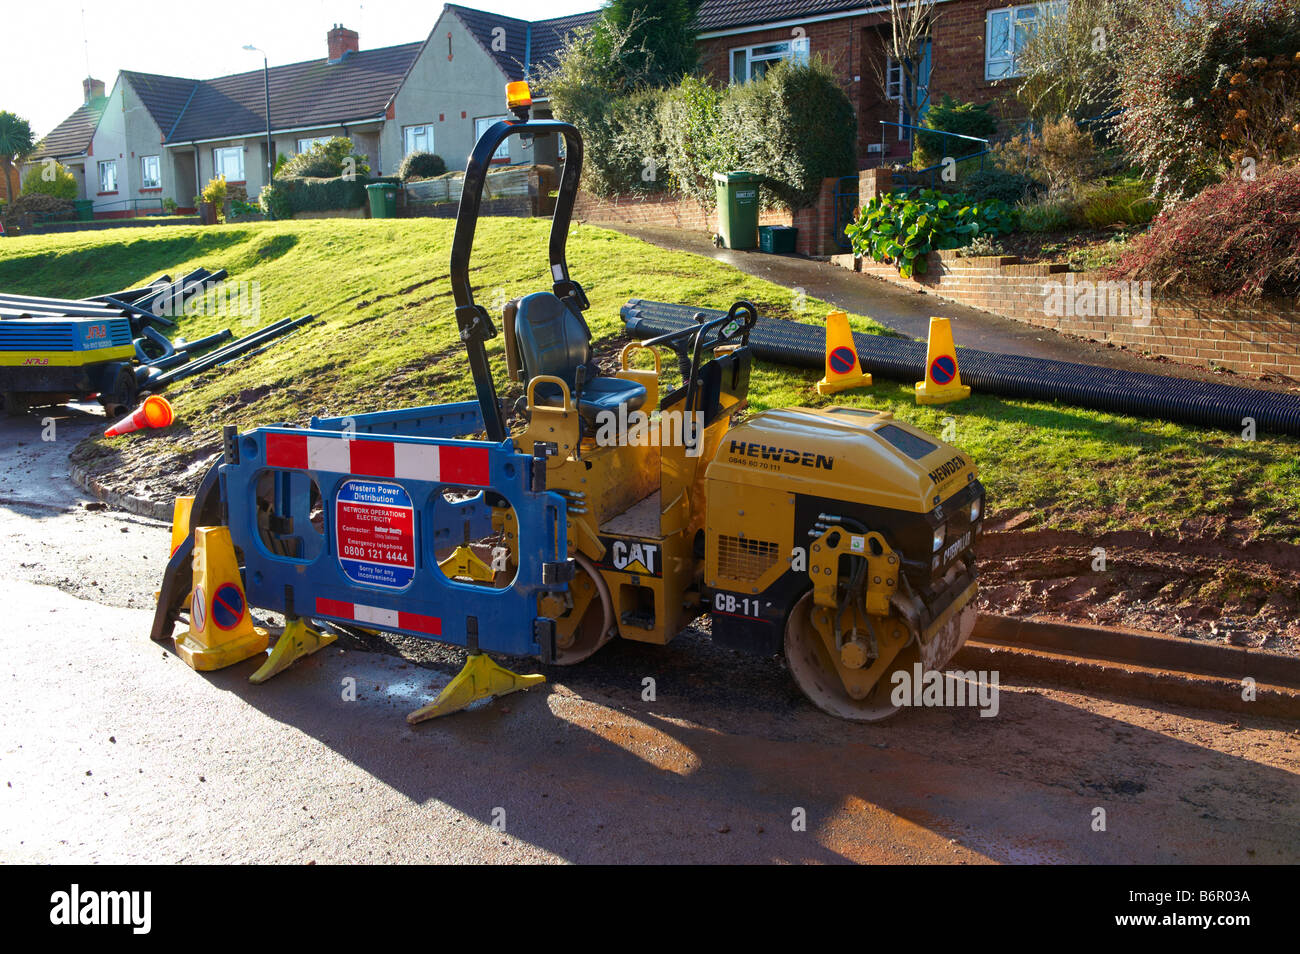 Road roller in road after laying electrical cabling - Stock Image